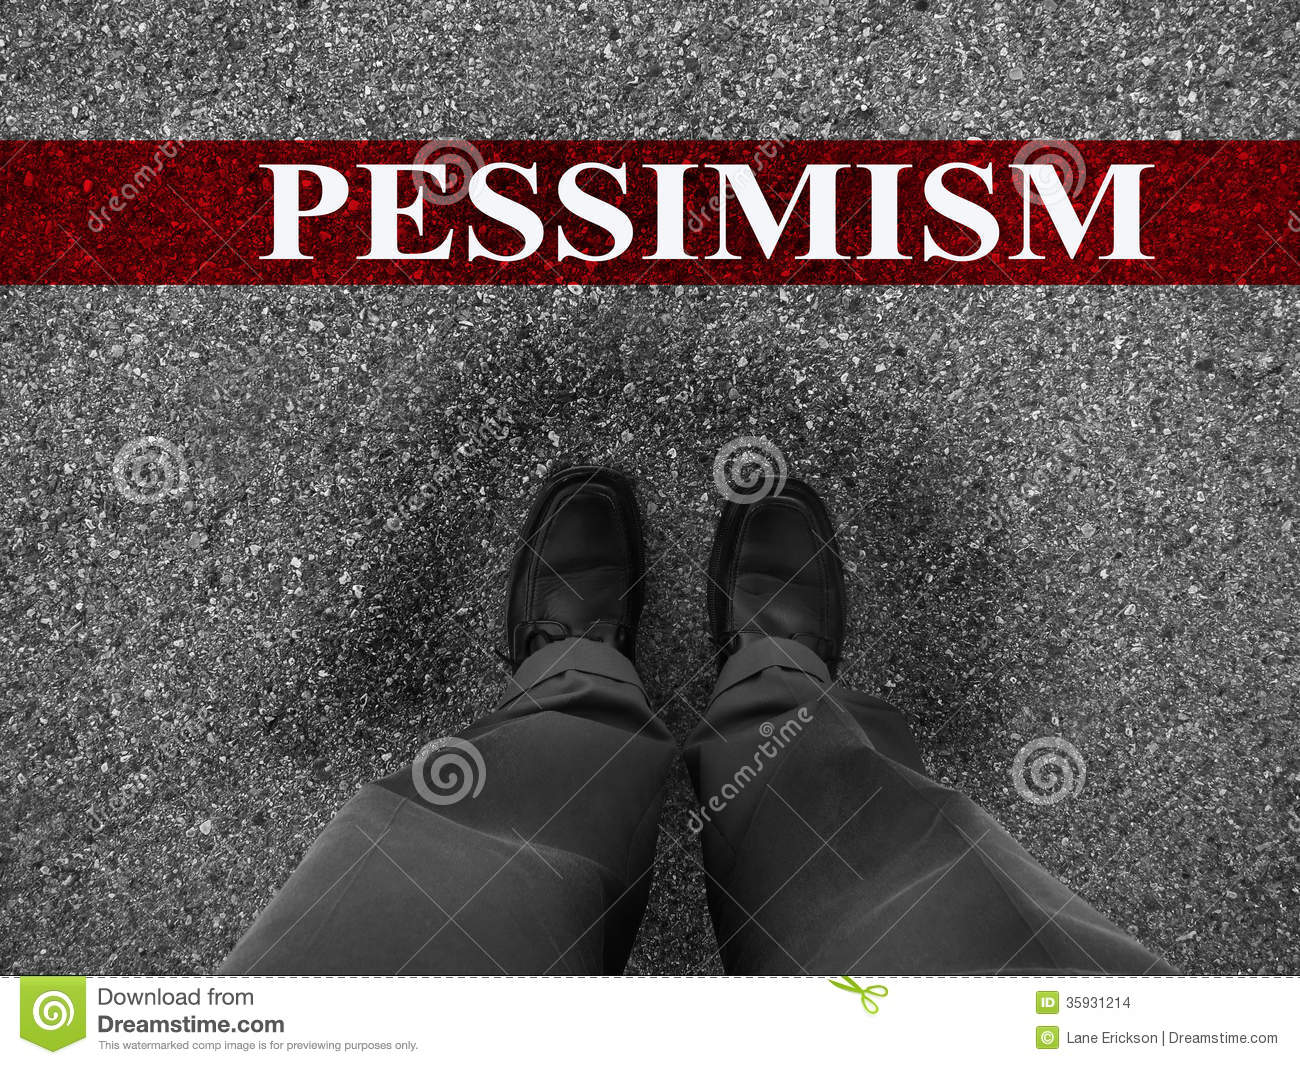 technological pessimism Are we living in an age of technological optimism or technological pessimism in the idea of 'technology' and postmodernpessimism, leo marx, a leading historian of technology and american culture, argues that while technological optimism had been the default mode of american culture throughout most of its history, technological pessimism asserted itself to an unprecedented degree.